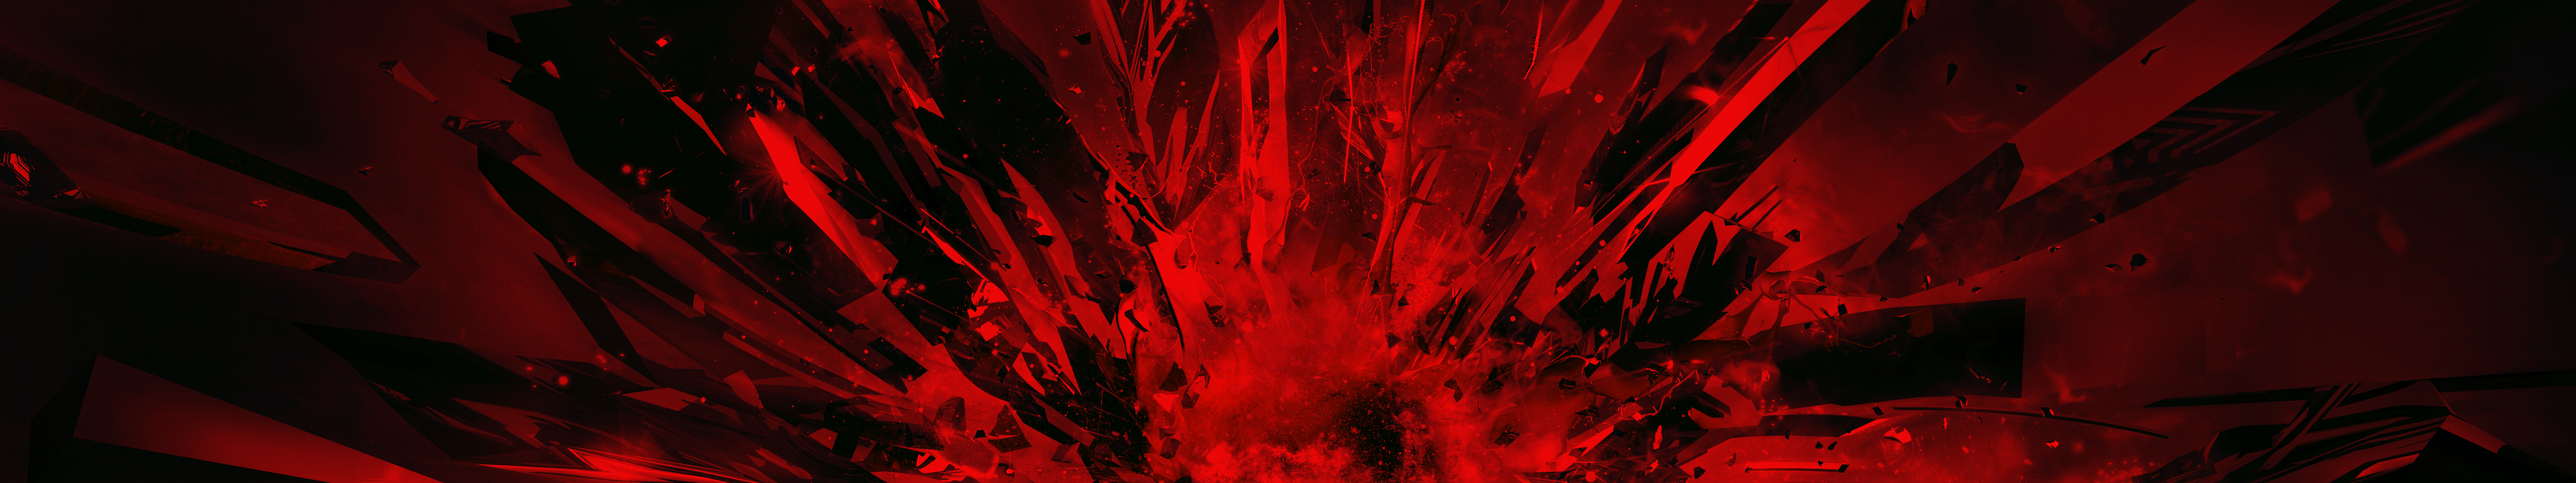 Abstract Red   5760x1080 Triple Monitor Wallpapers   TMW ...